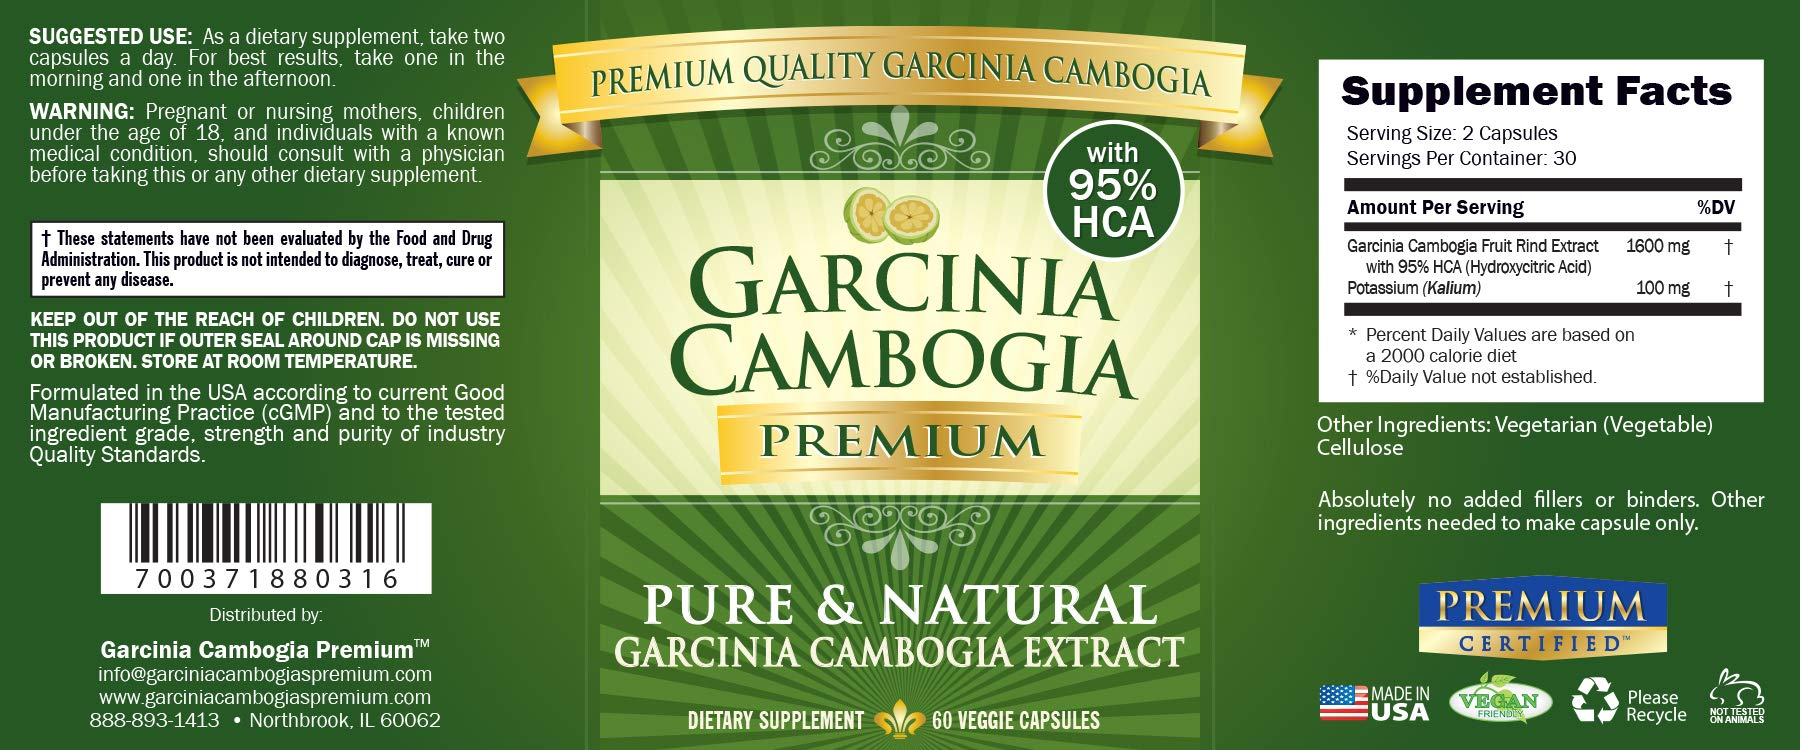 Garcinia Cambogia Premium 95% HCA - Best Natural Weight Loss, Quick Fat Burner and Appetite Suppressant - 180 Vegan Capsules, 3 Months Supply - 100% Money Back Guarantee! by Garcinia Cambogia Premium (Image #3)